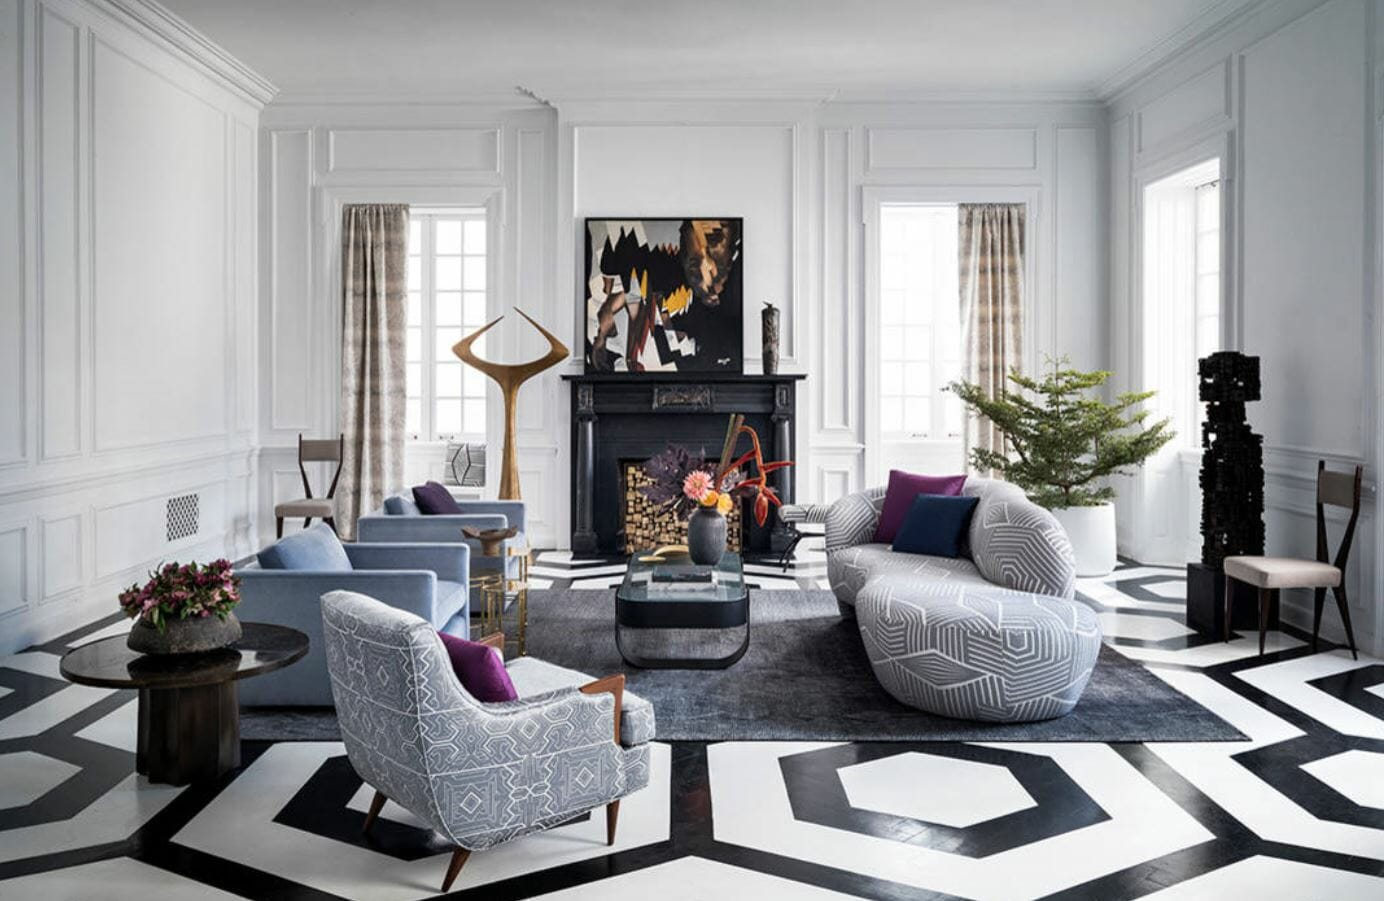 Design Trends: 7 Best Winter 2019 Interior Design Trends To Try In Your Home